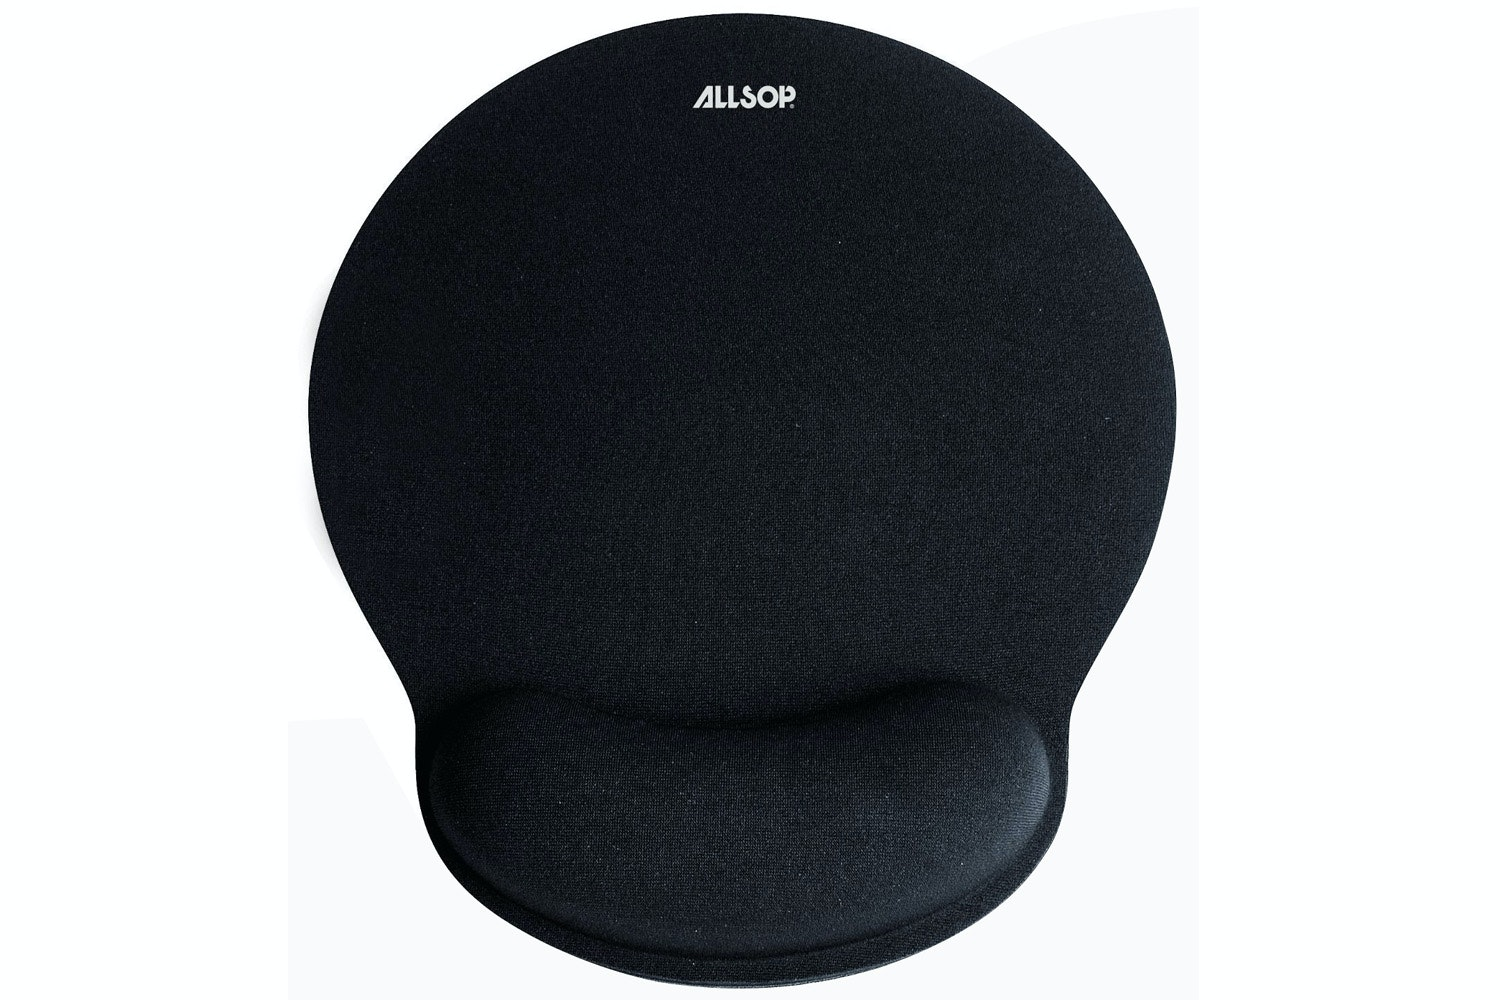 Allsop Gel Mouse Pad With Mini Wrist Rest | Black